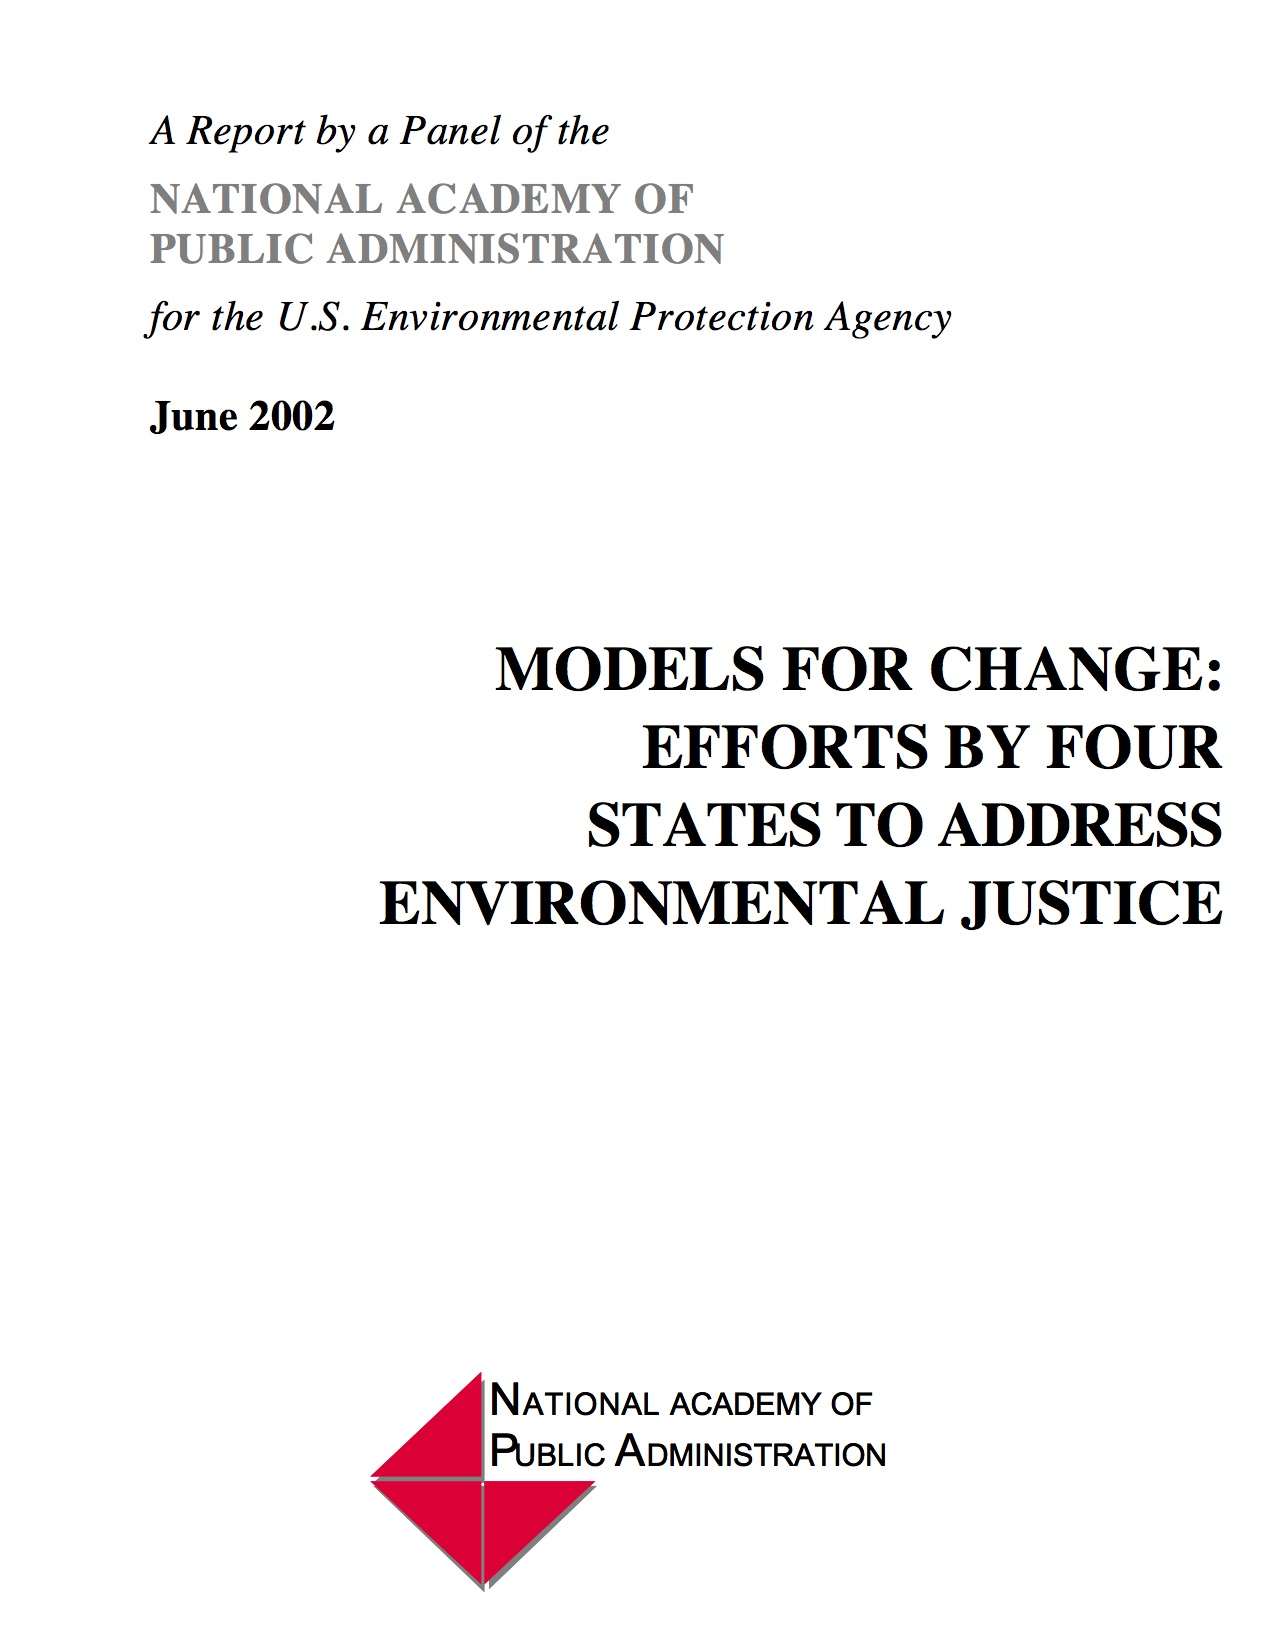 Models For Change: Efforts By Four States To Address Environmental Justice (2002)